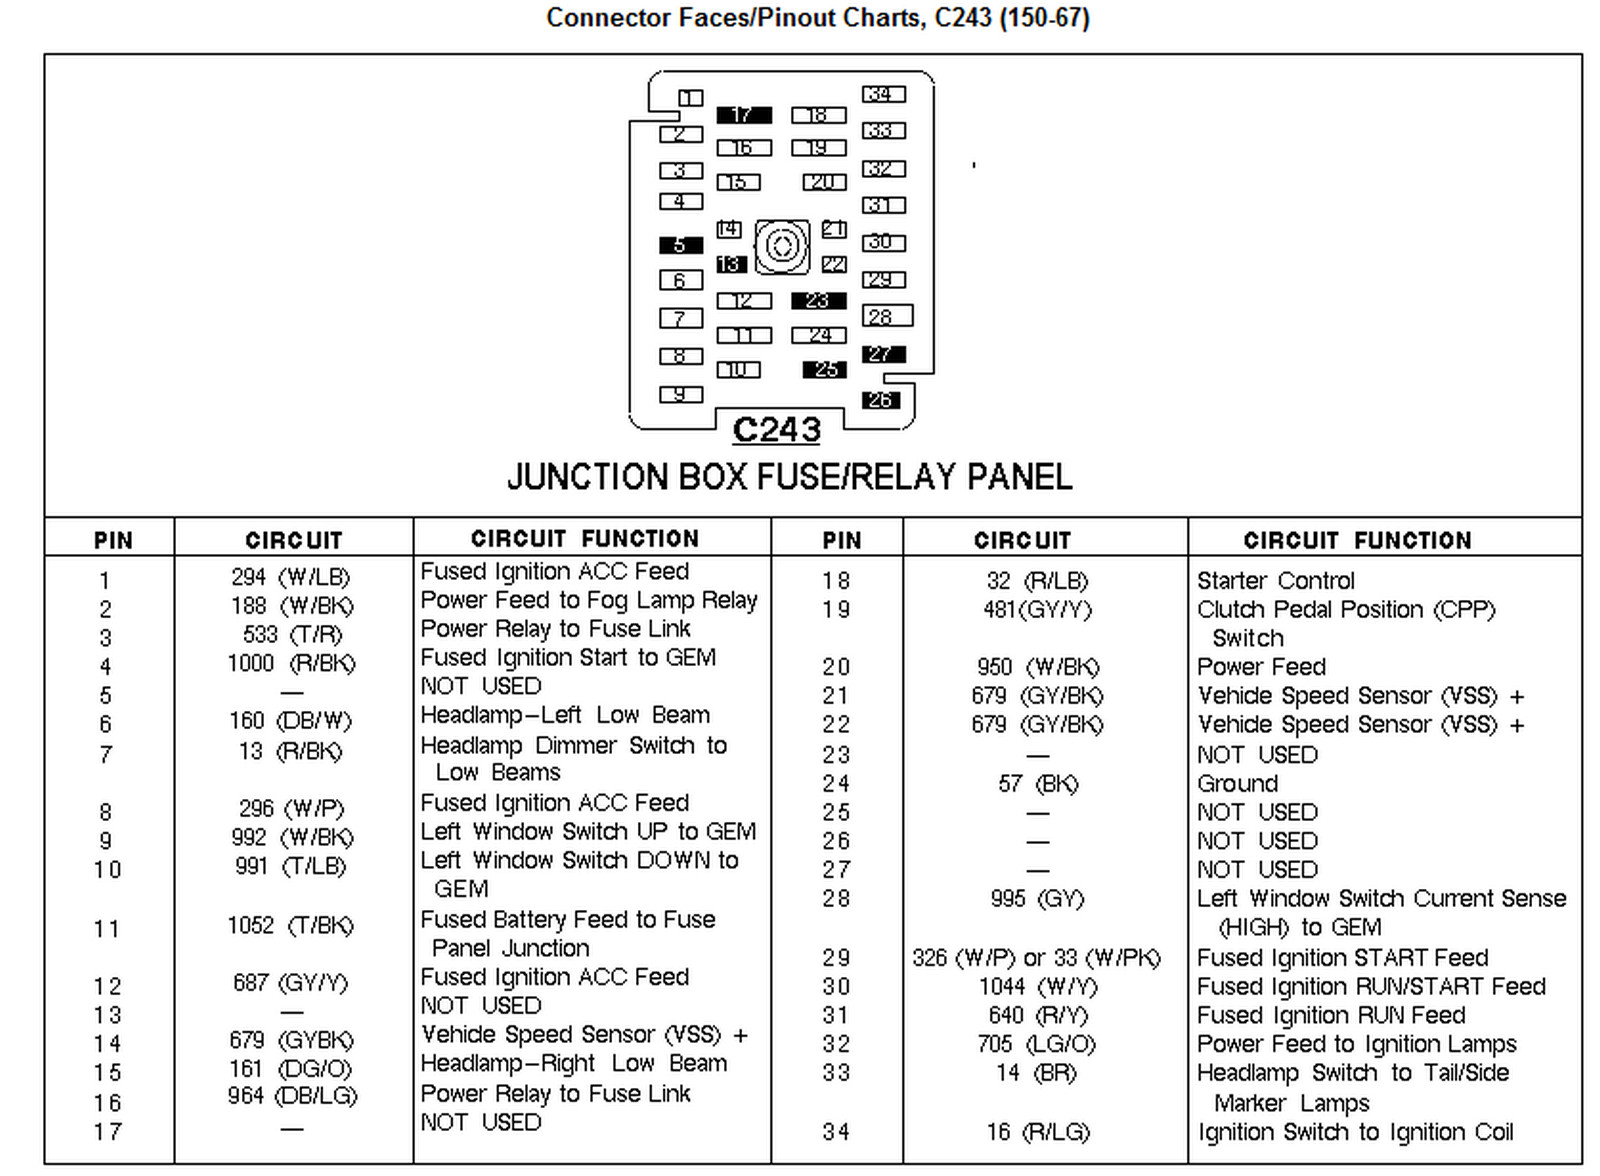 Panel Fuse Box Diagram Wiring Data 2000 Chevy Cavalier 97 F250 Schema Diagrams F150 1997 F 150